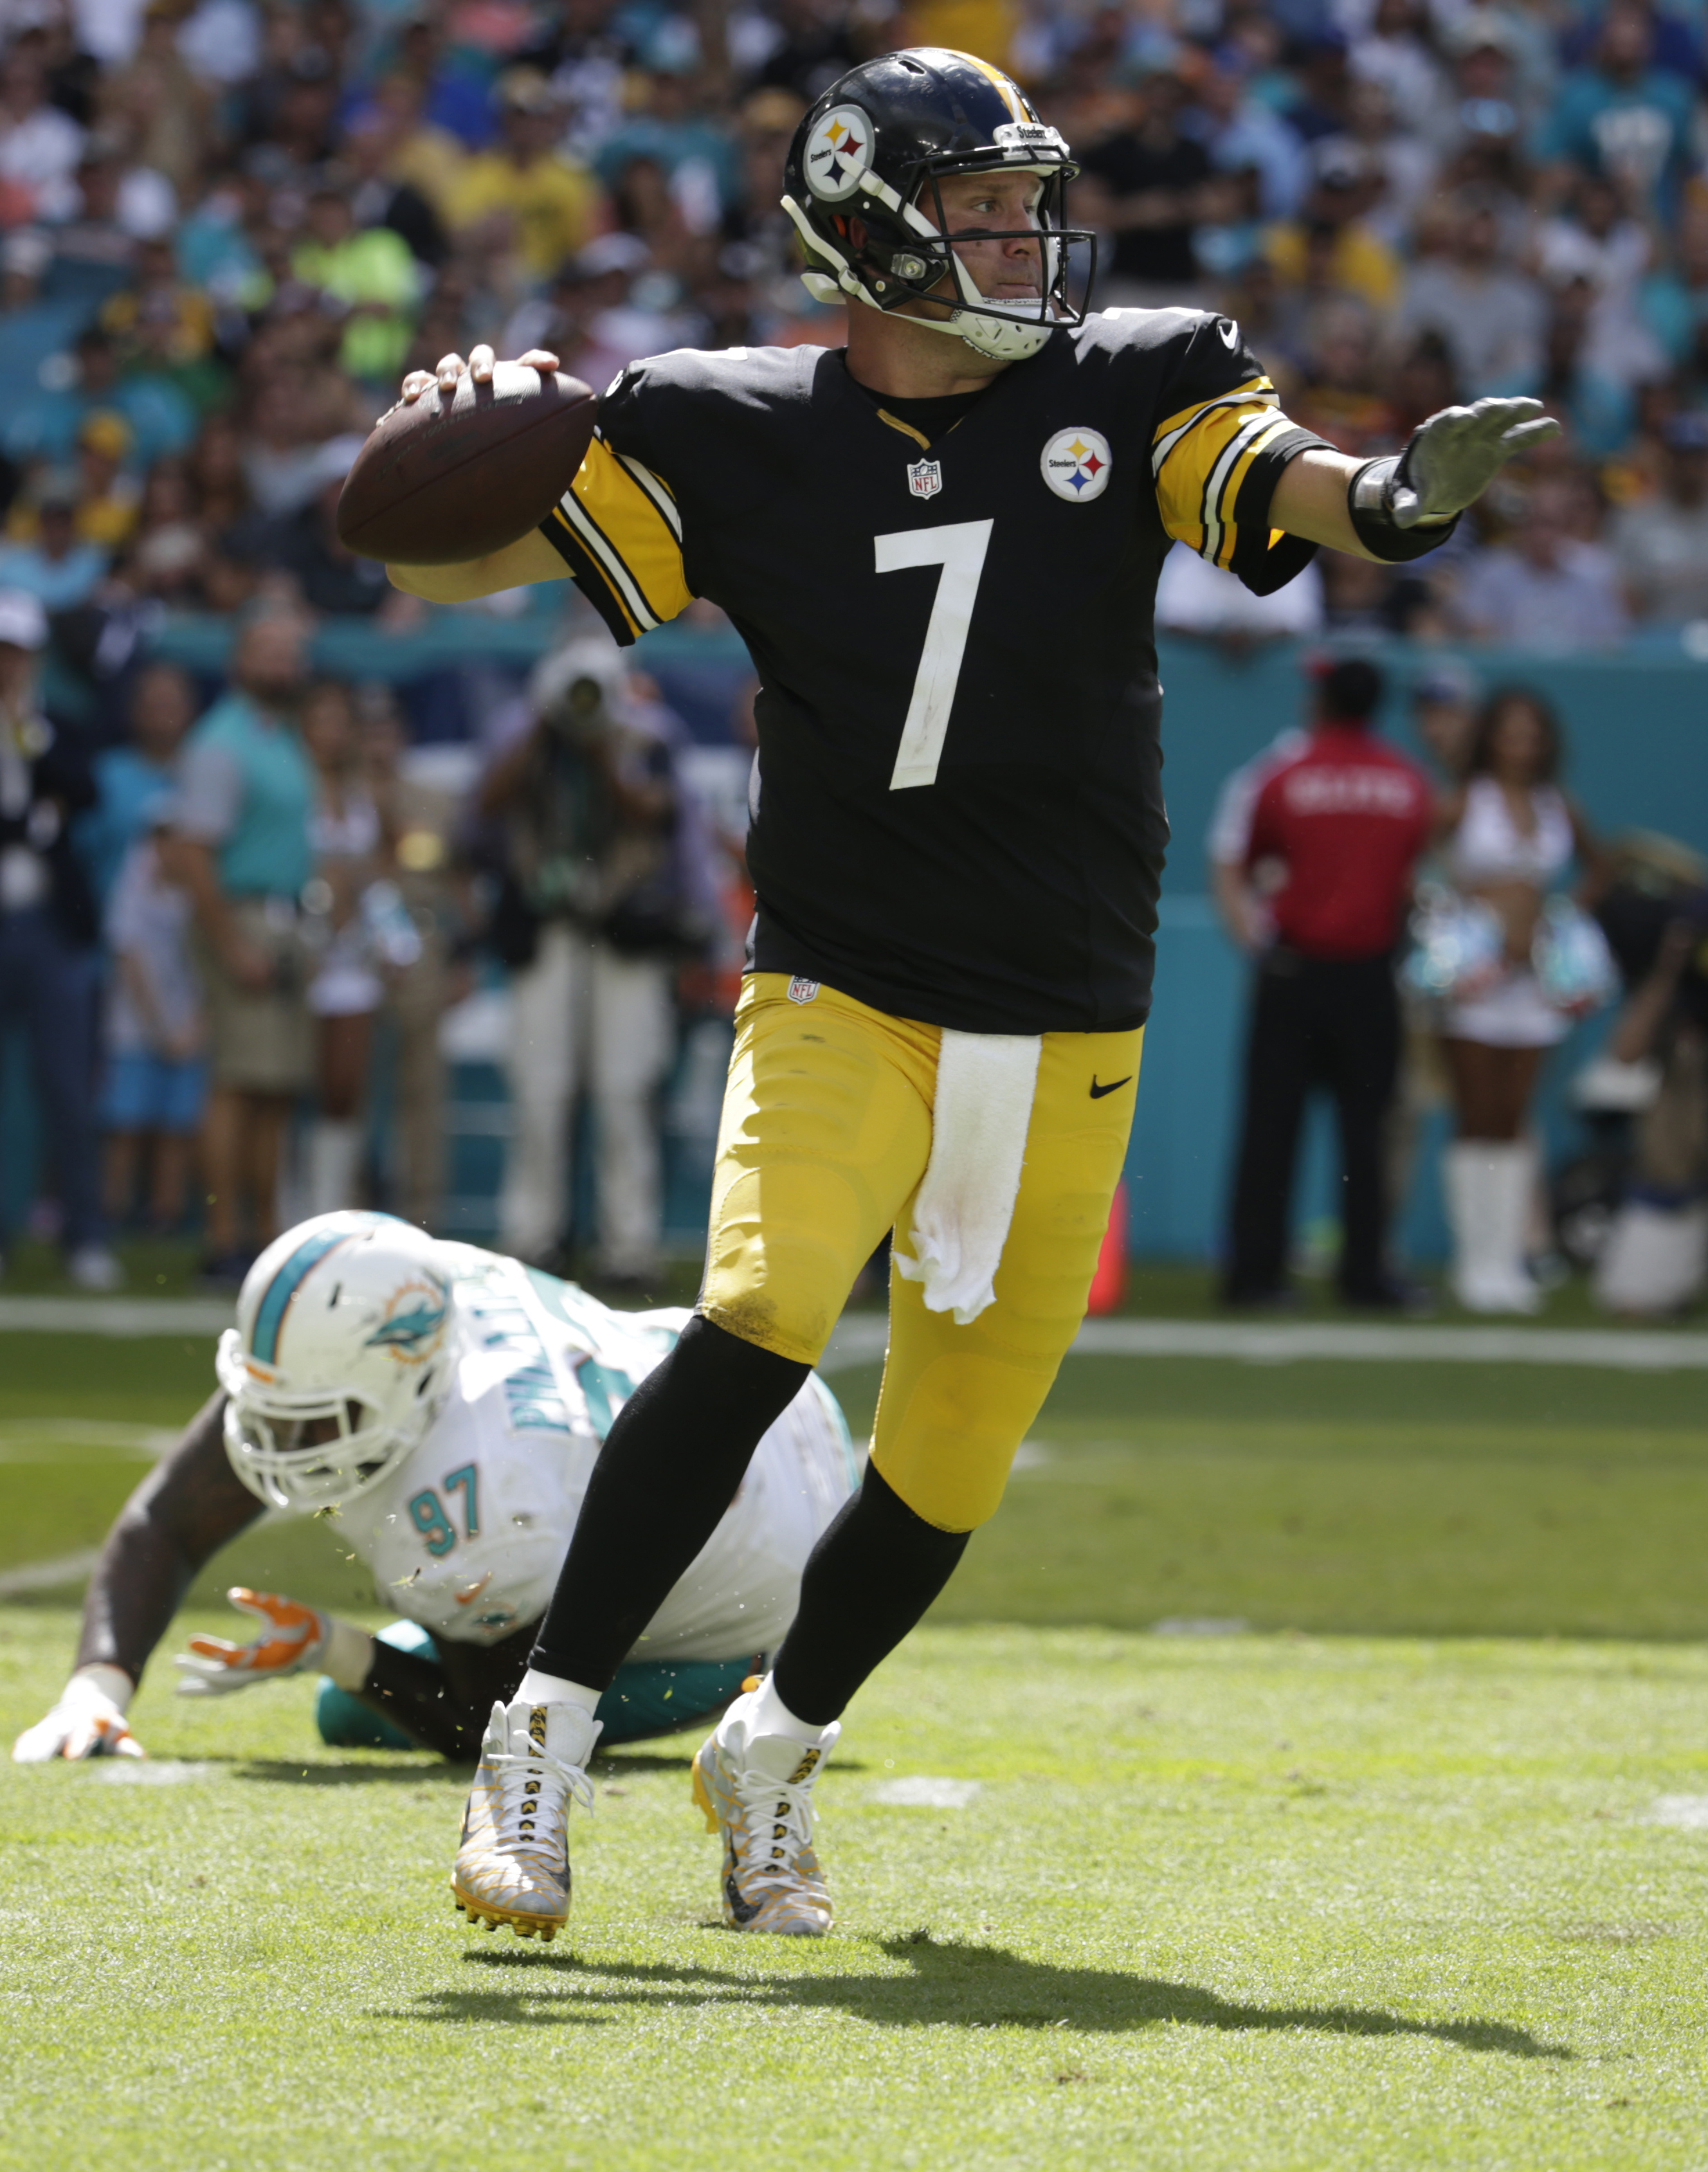 Pittsburgh Steelers quarterback Ben Roethlisberger (7) looks to pass after escaping a tackle by Miami Dolphins defensive tackle Jordan Phillips (97), during the first half of an NFL football game, Sunday, Oct. 16, 2016, in Miami Gardens, Fla. Roethlisberg